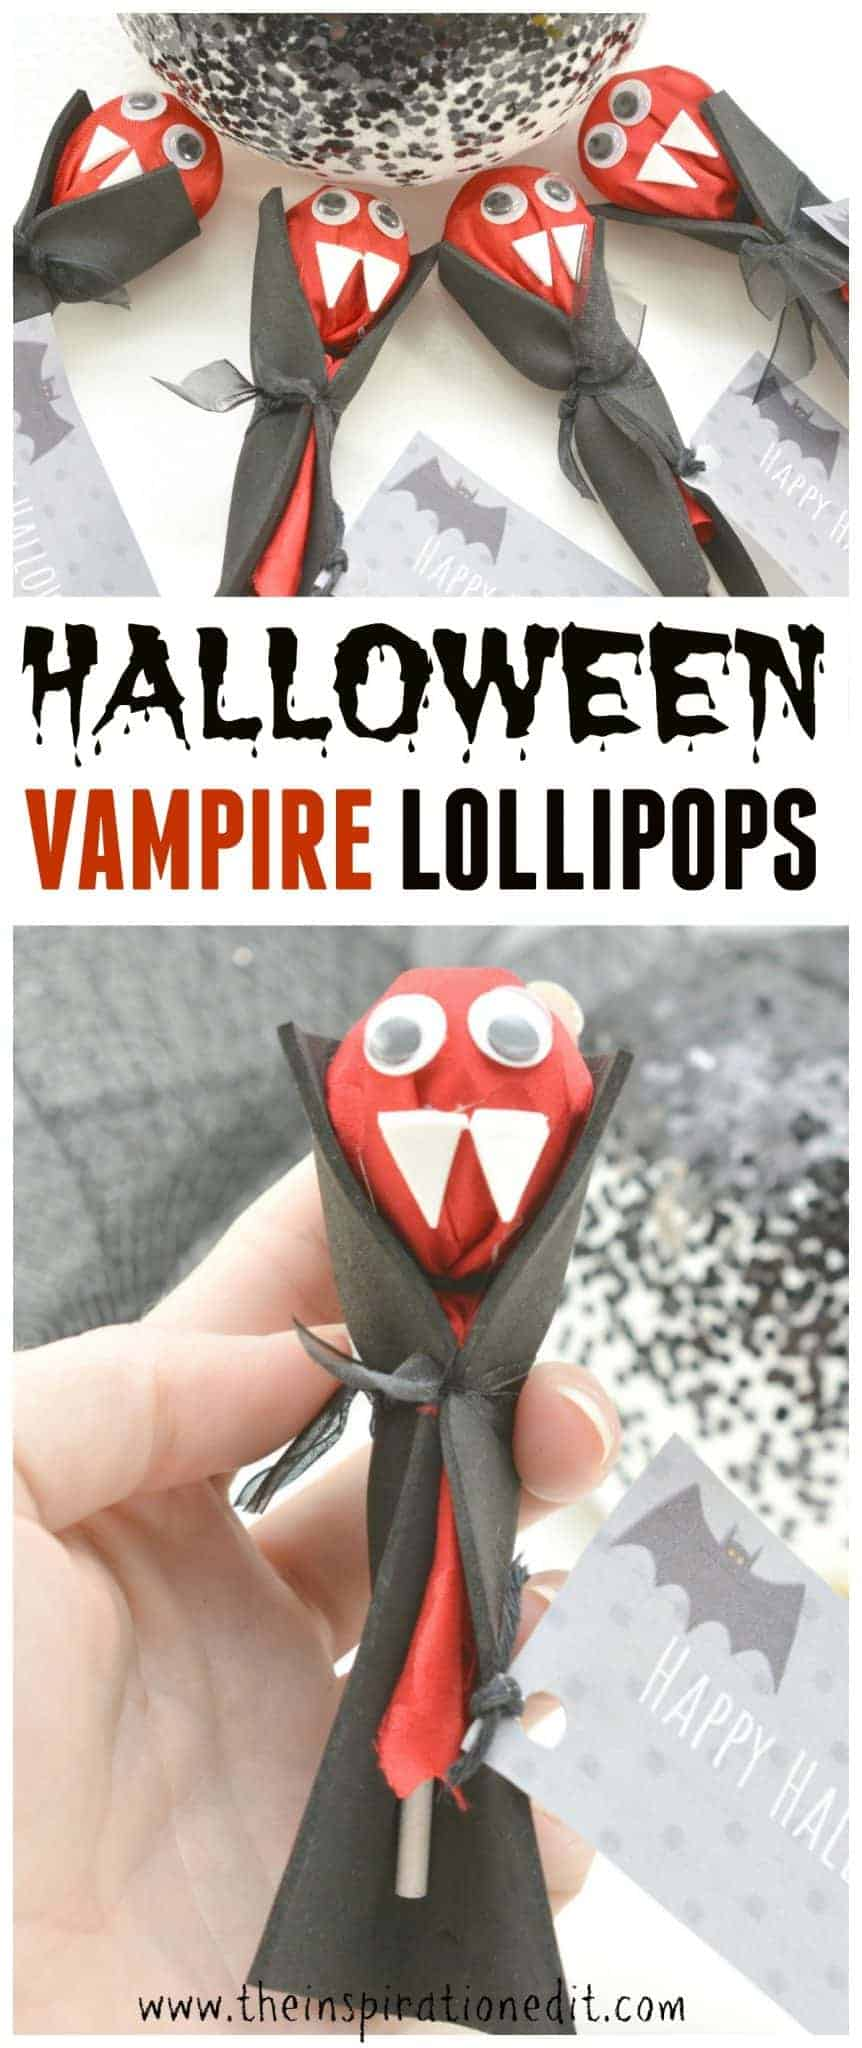 DIY Vampire Lollipops For Halloween